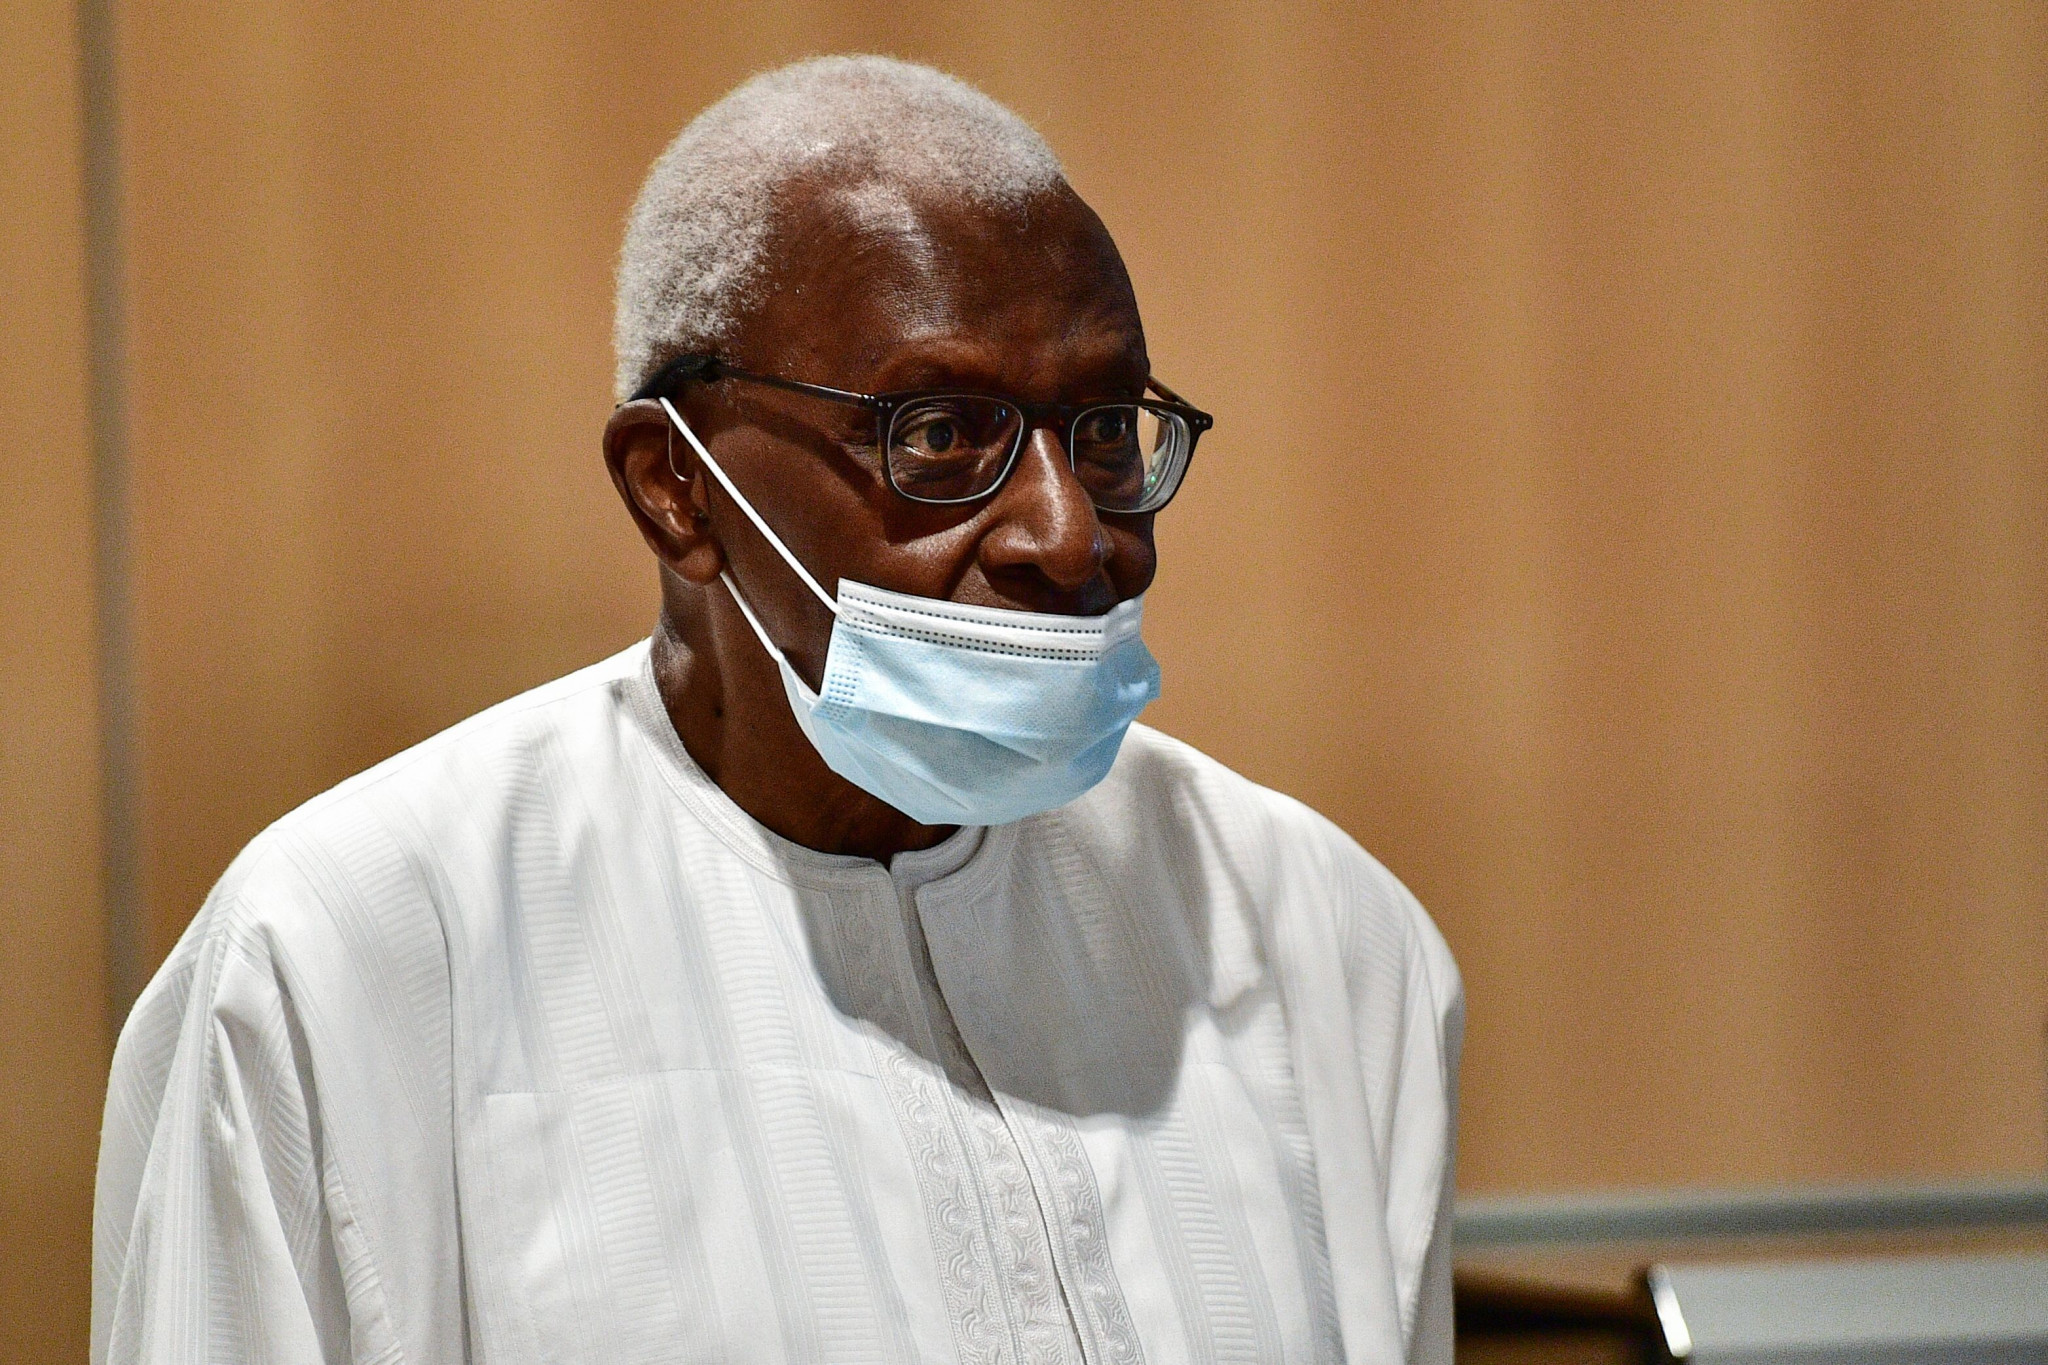 Former World Athletics President Lamine Diack was sentenced to two years in prison following an investigation into cover-ups of Russian doping cases for cash ©Getty Images